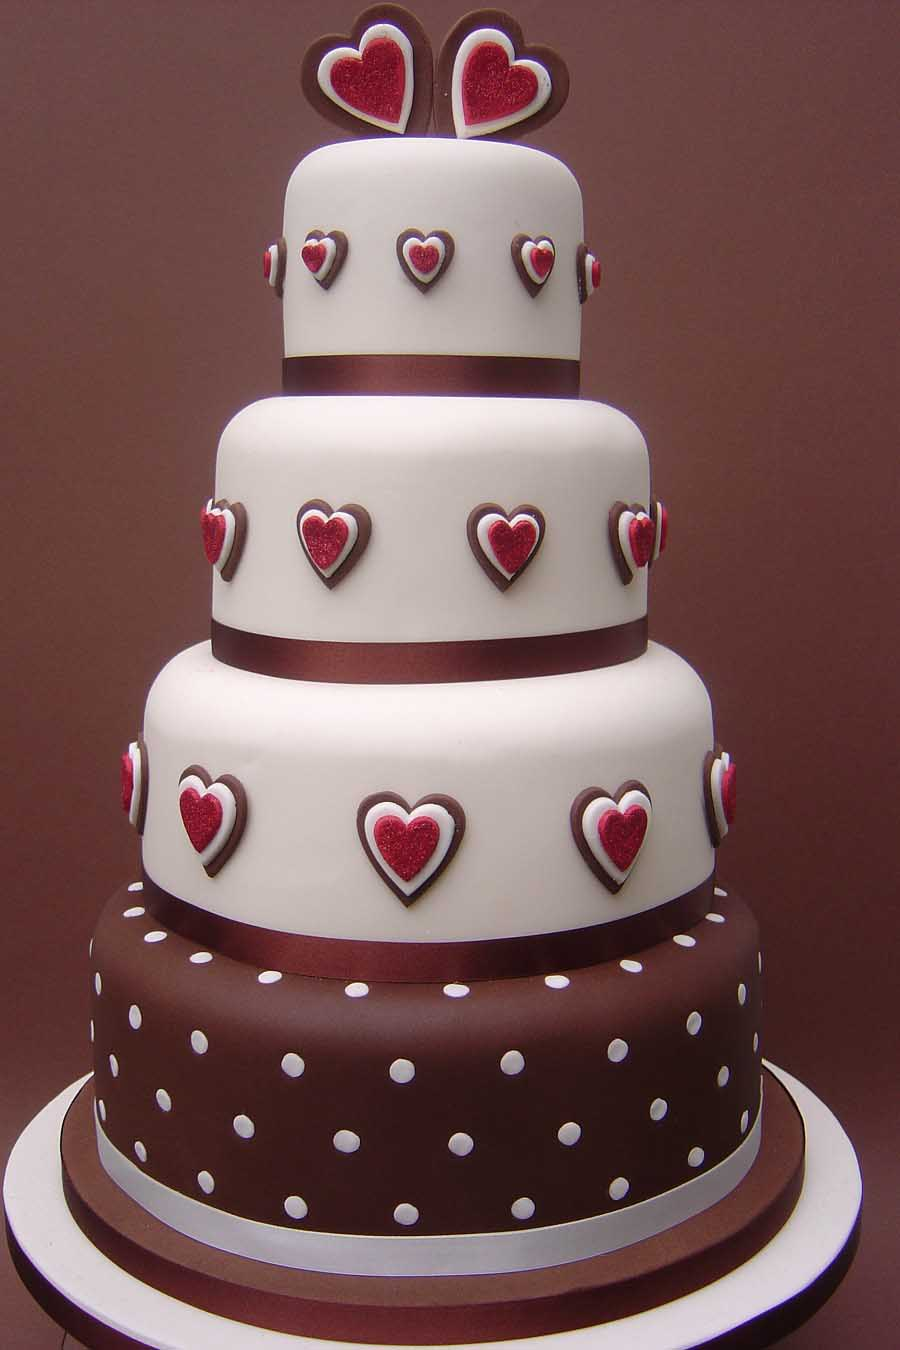 Latest Wedding Cake Designs - Starsricha